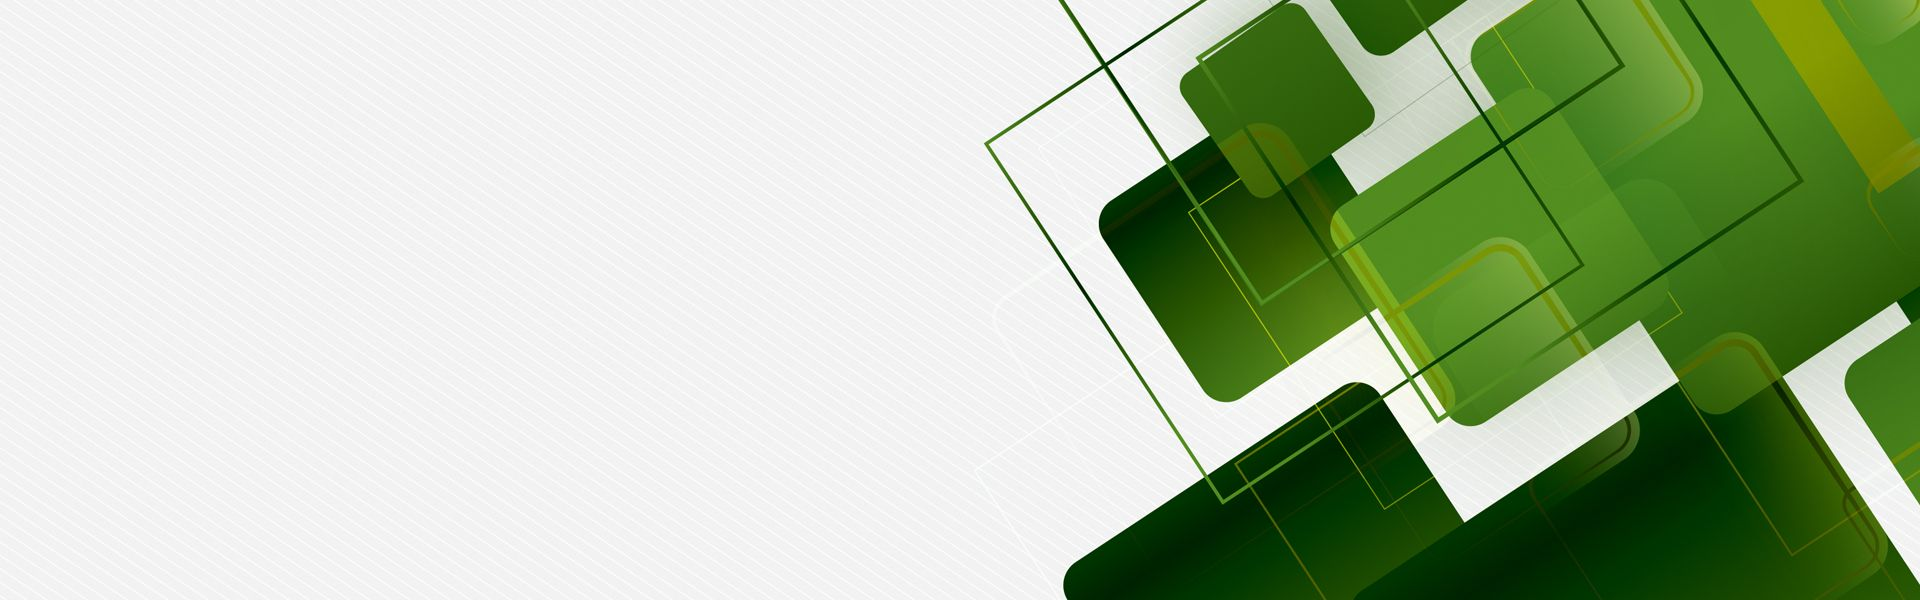 Business Geometric Abstract Background Banner Green Rectangle